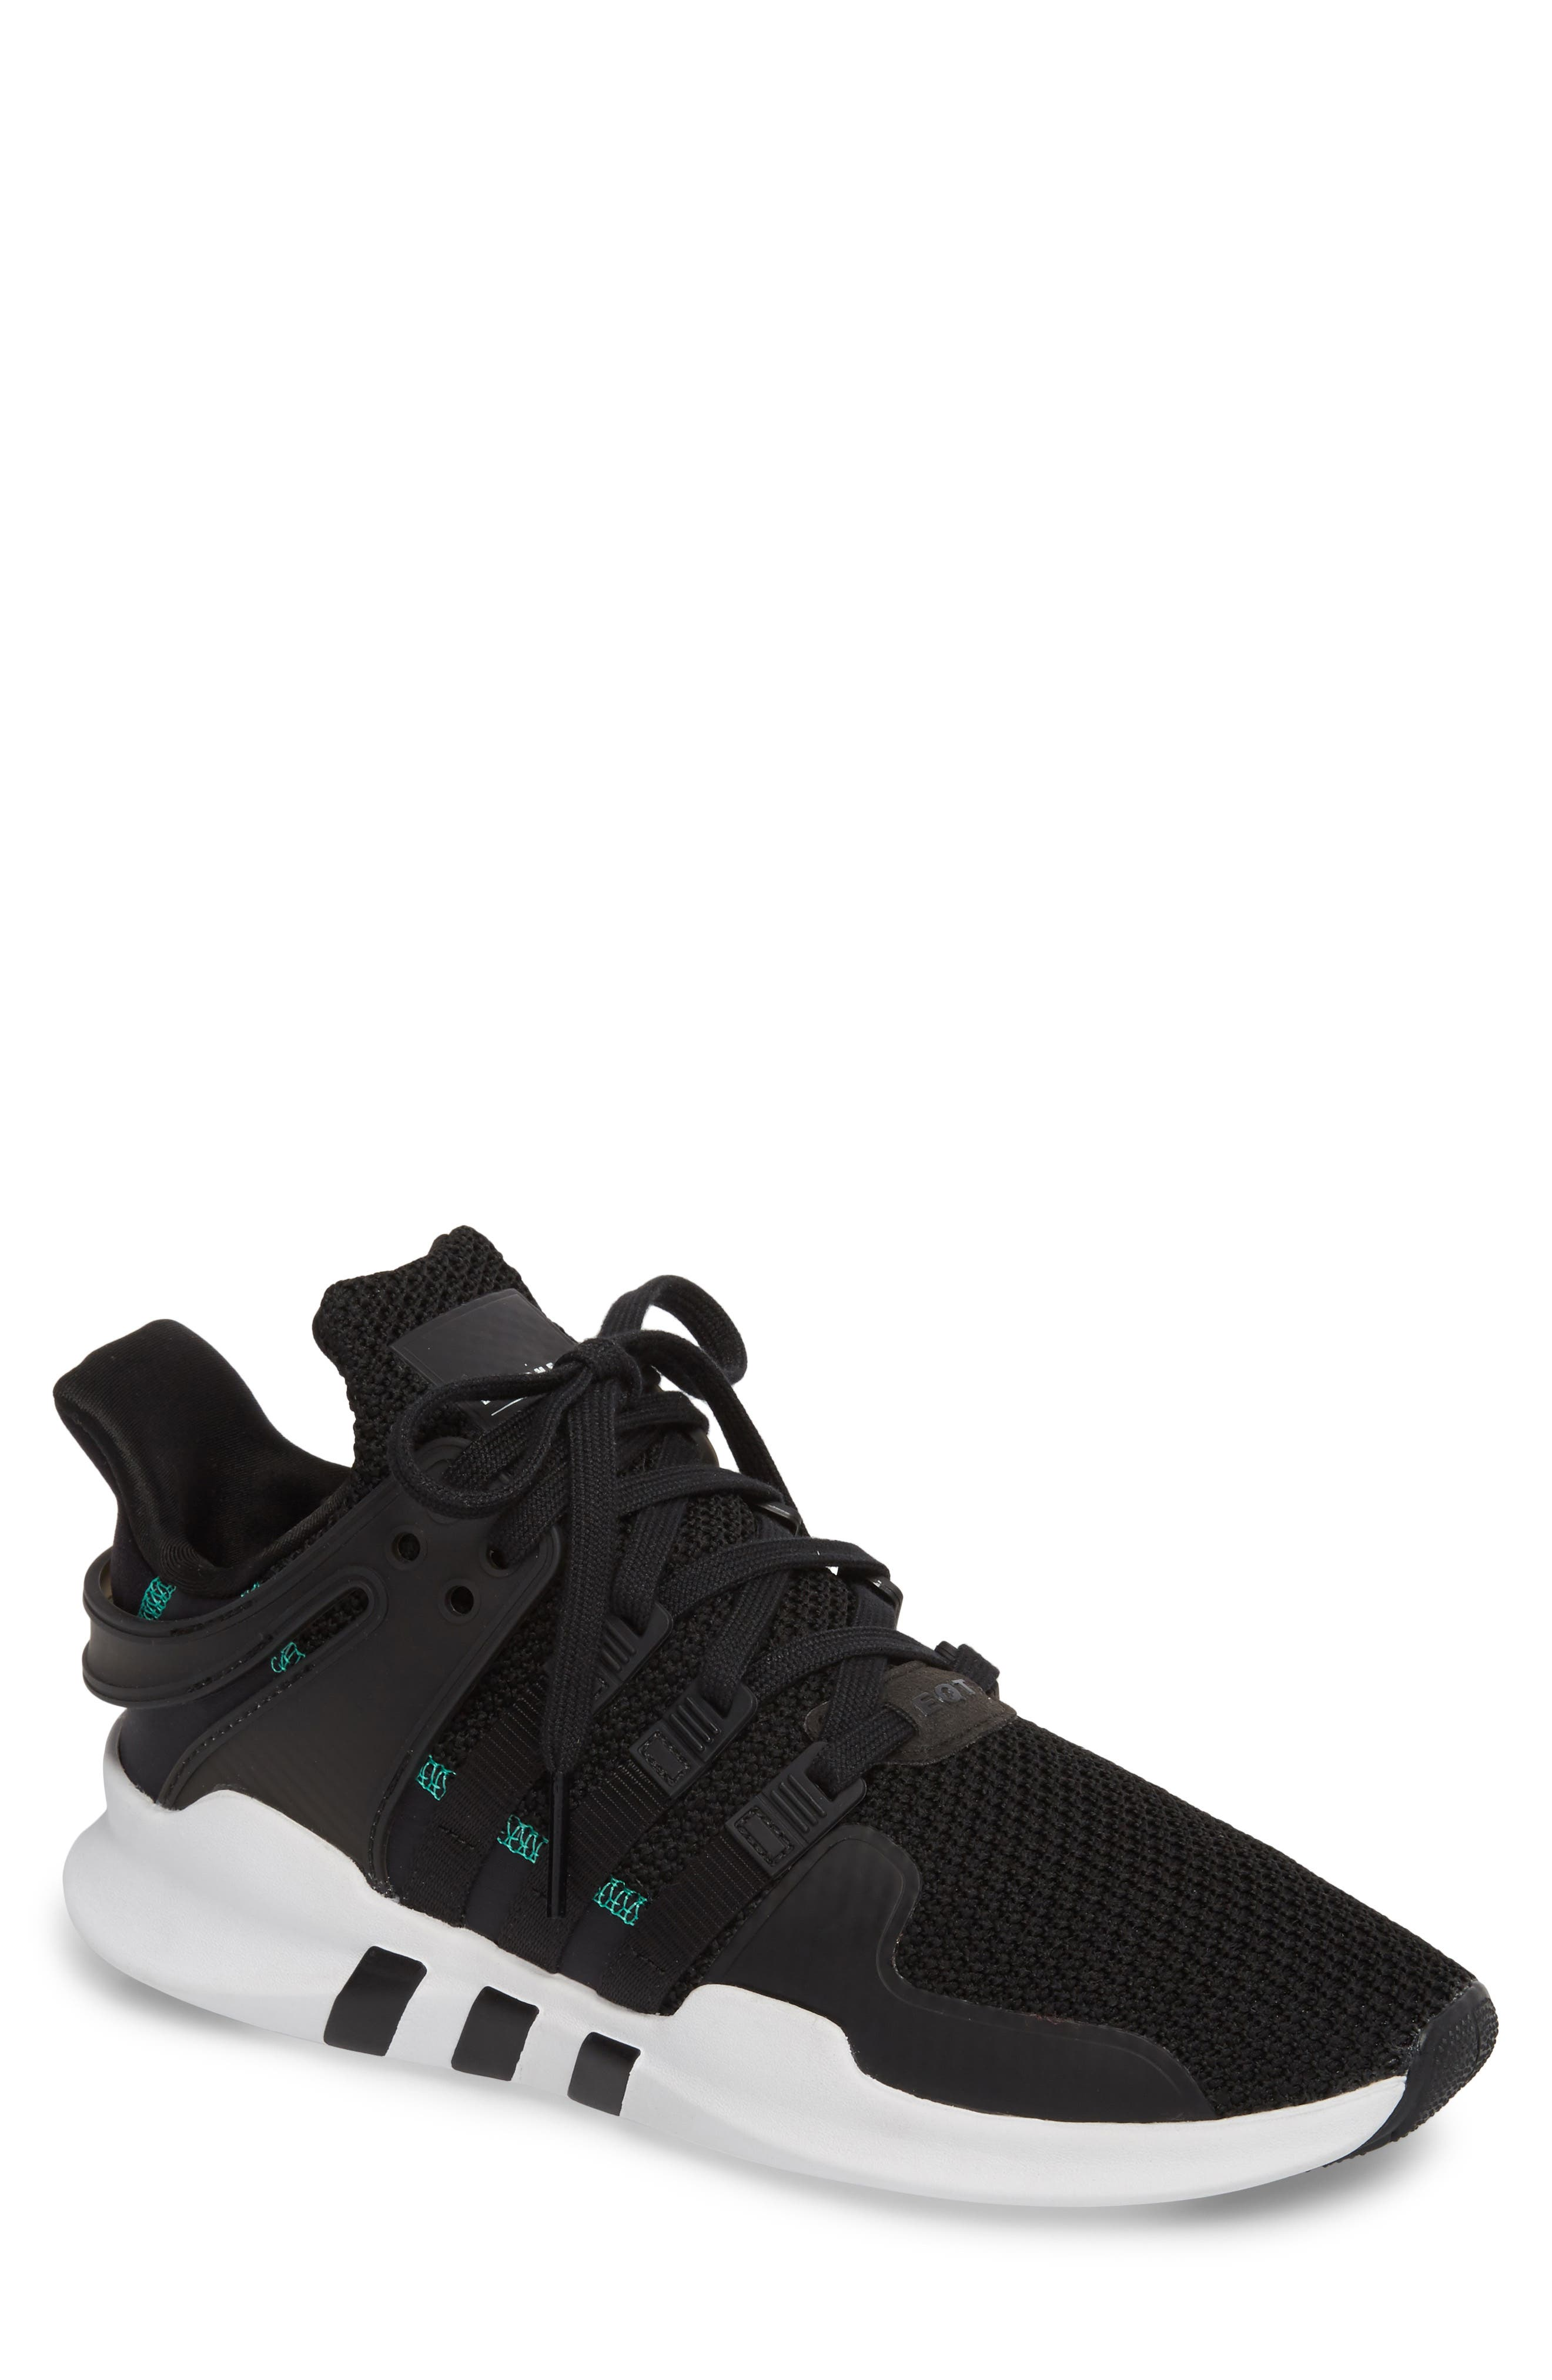 EQT Support Adv Sneaker,                         Main,                         color, Core Black/ White